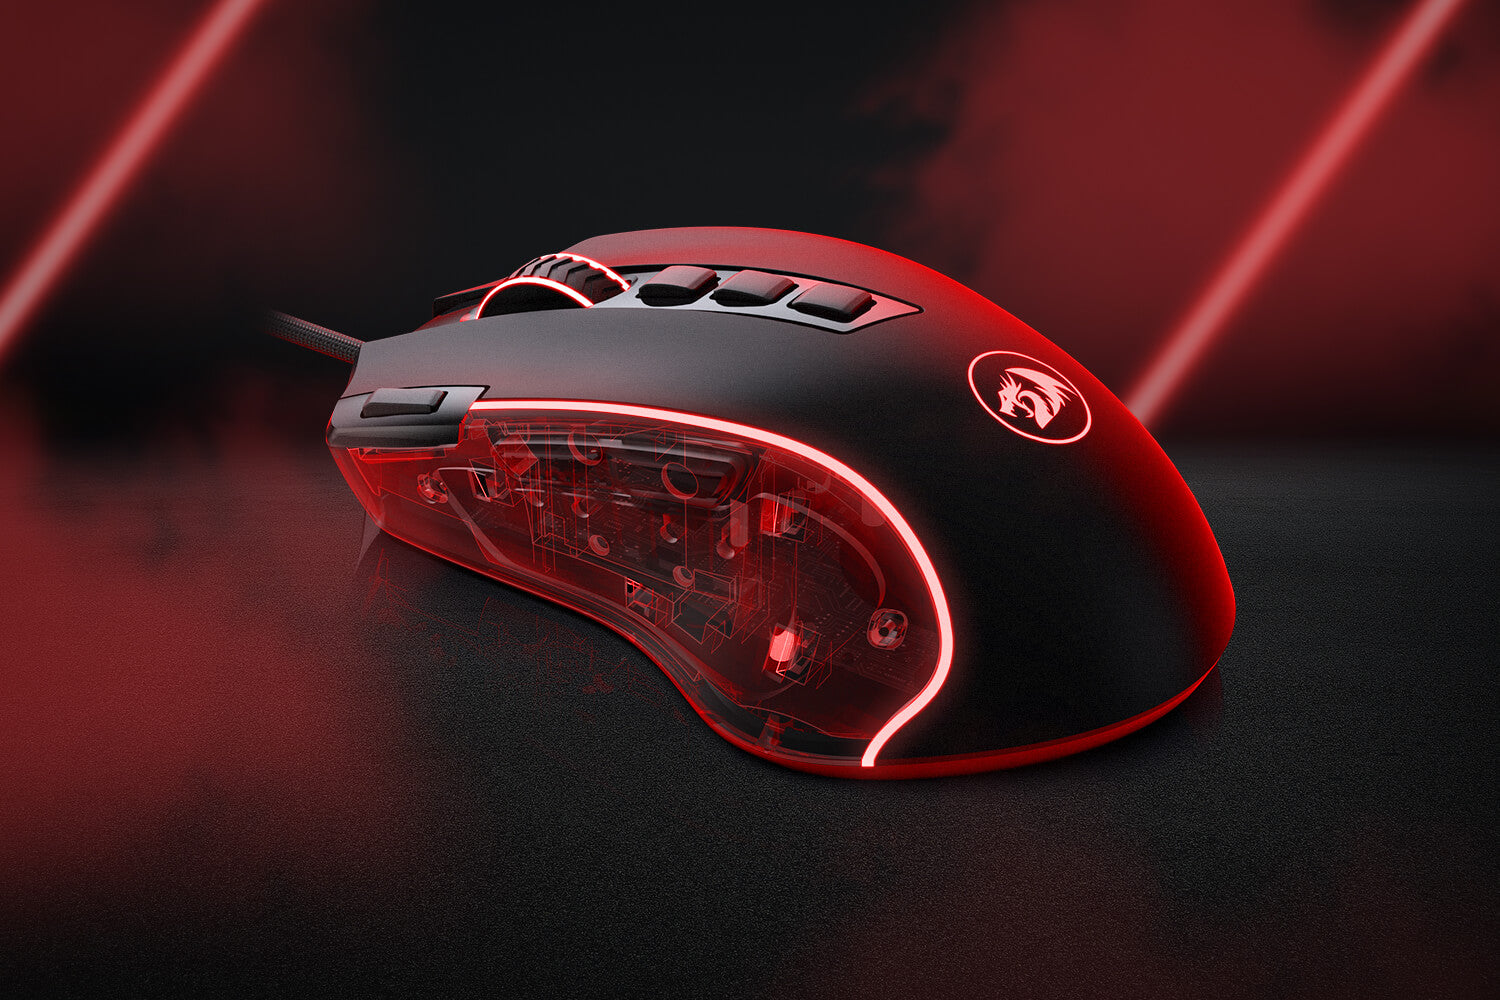 redragon optical mouse m612 with Precision Actuation